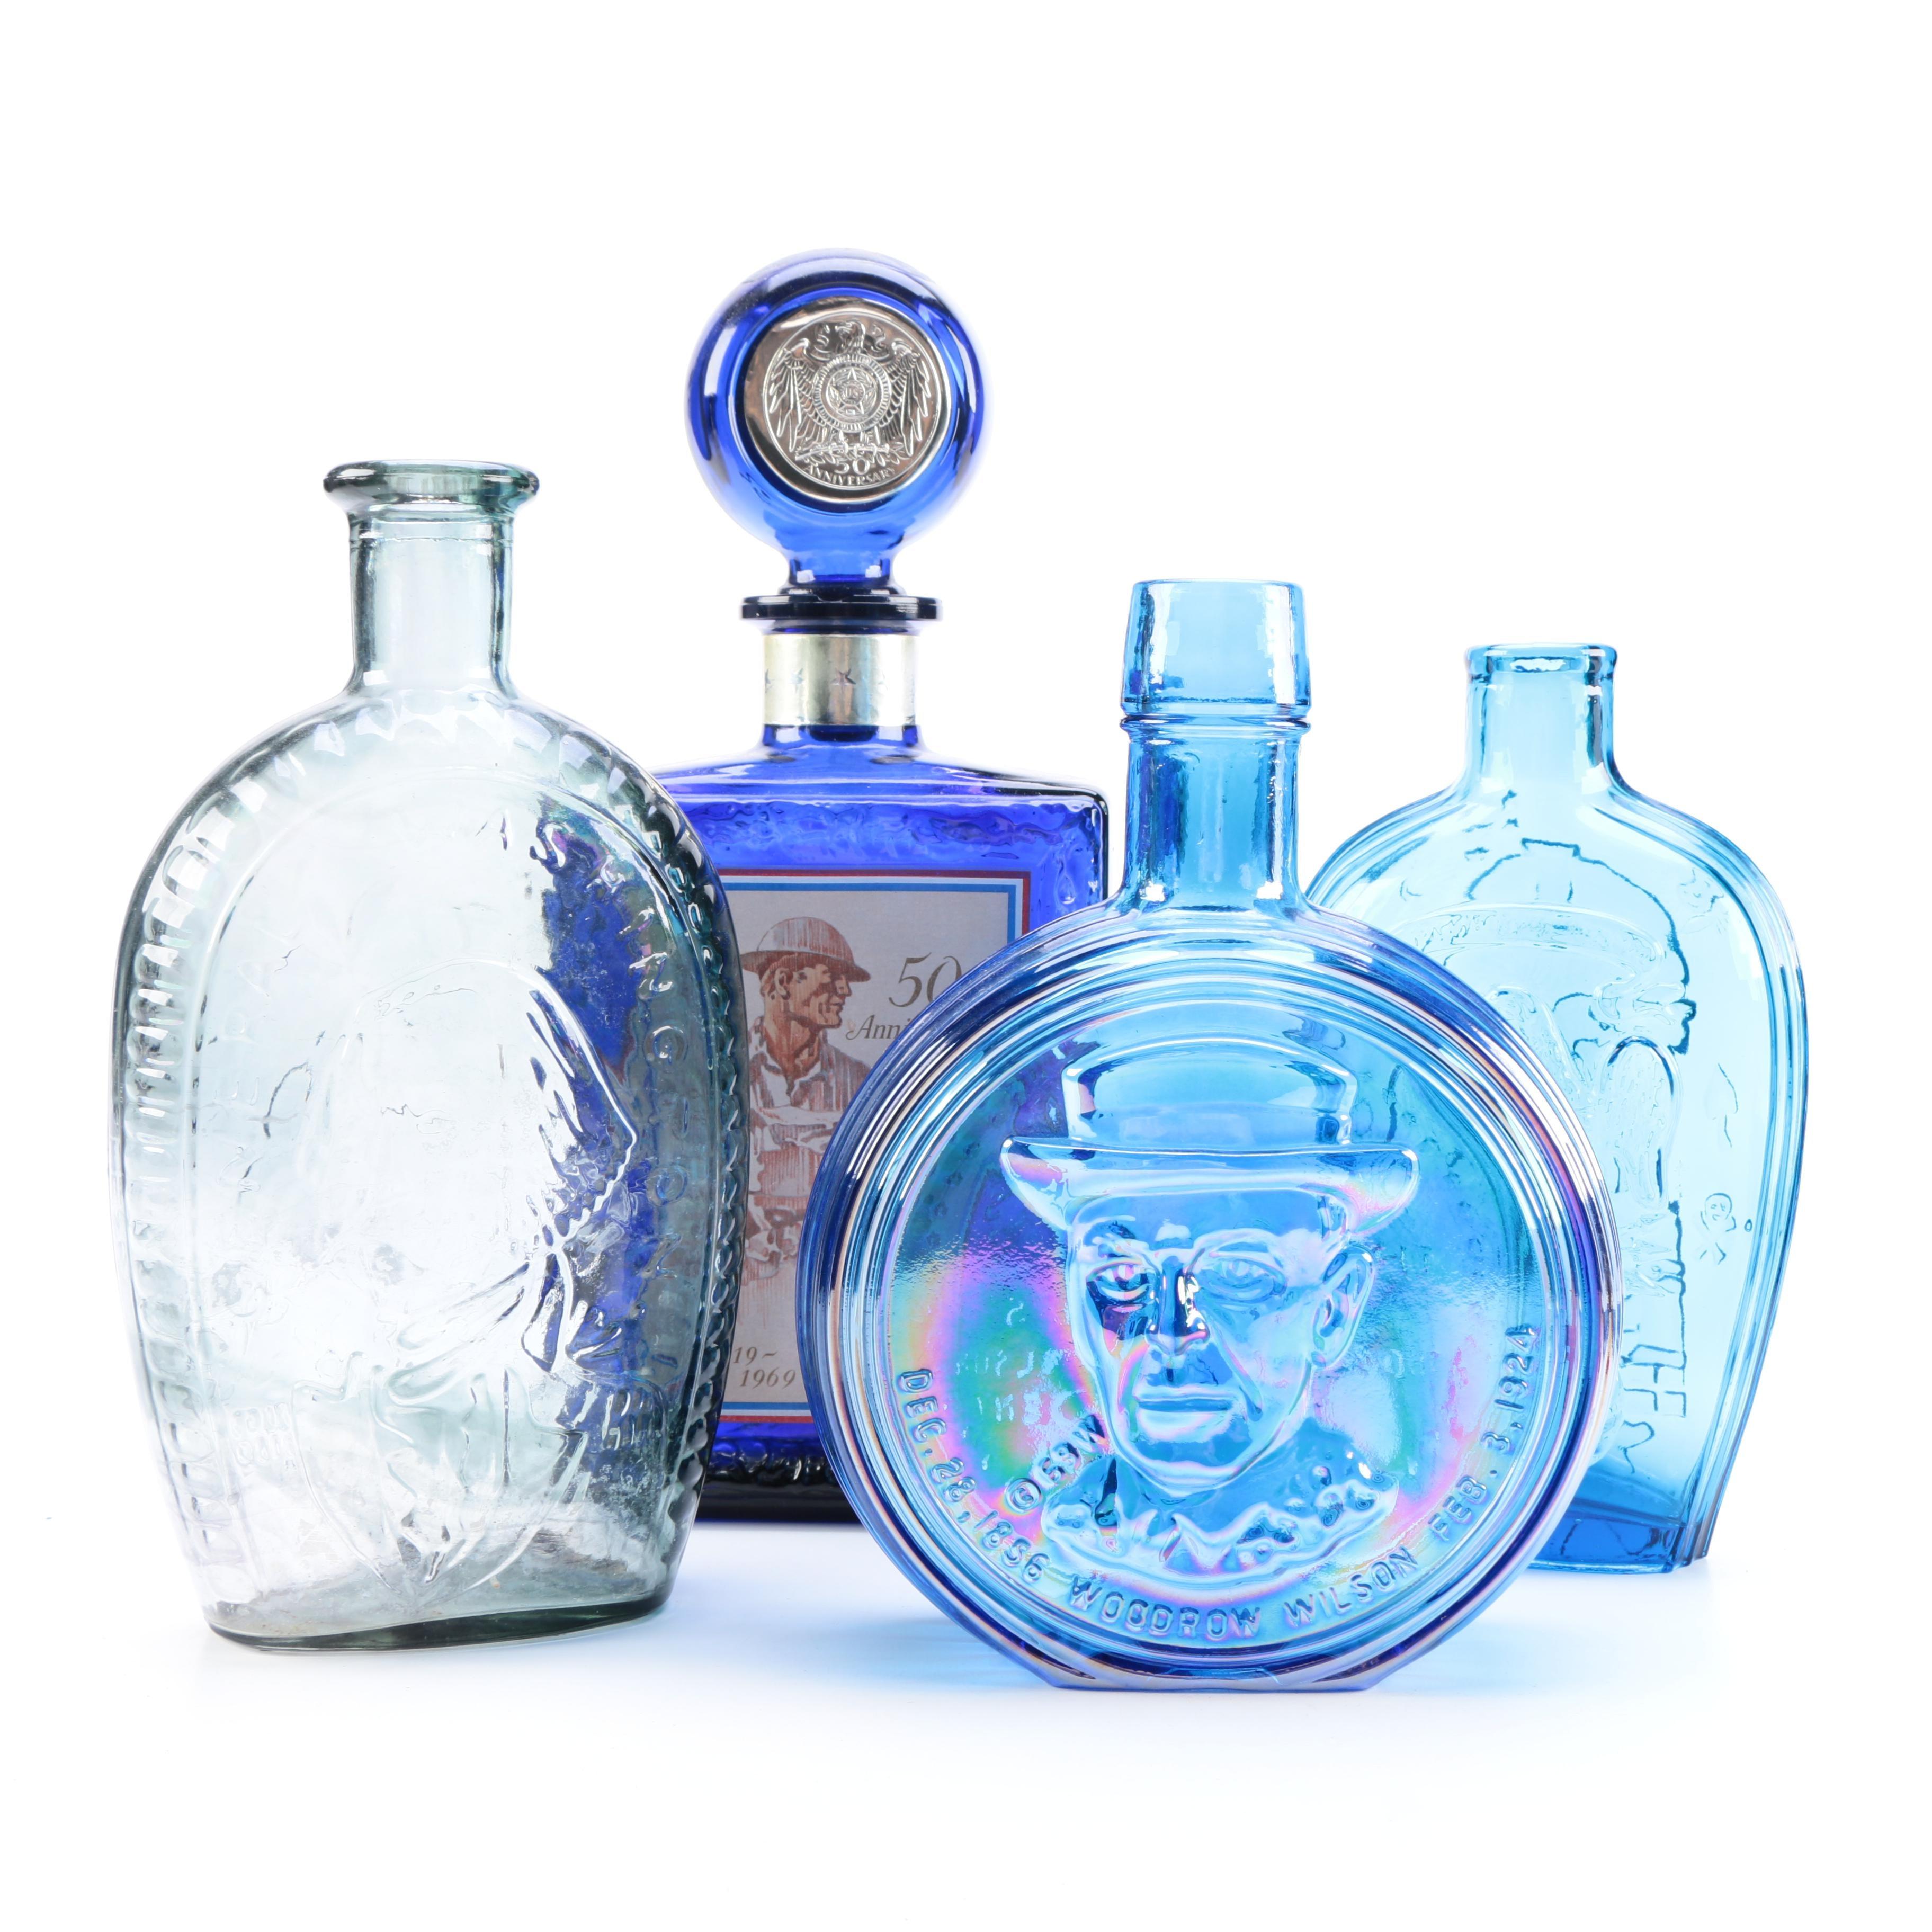 Blue Glass Liquor Bottles and Decanters